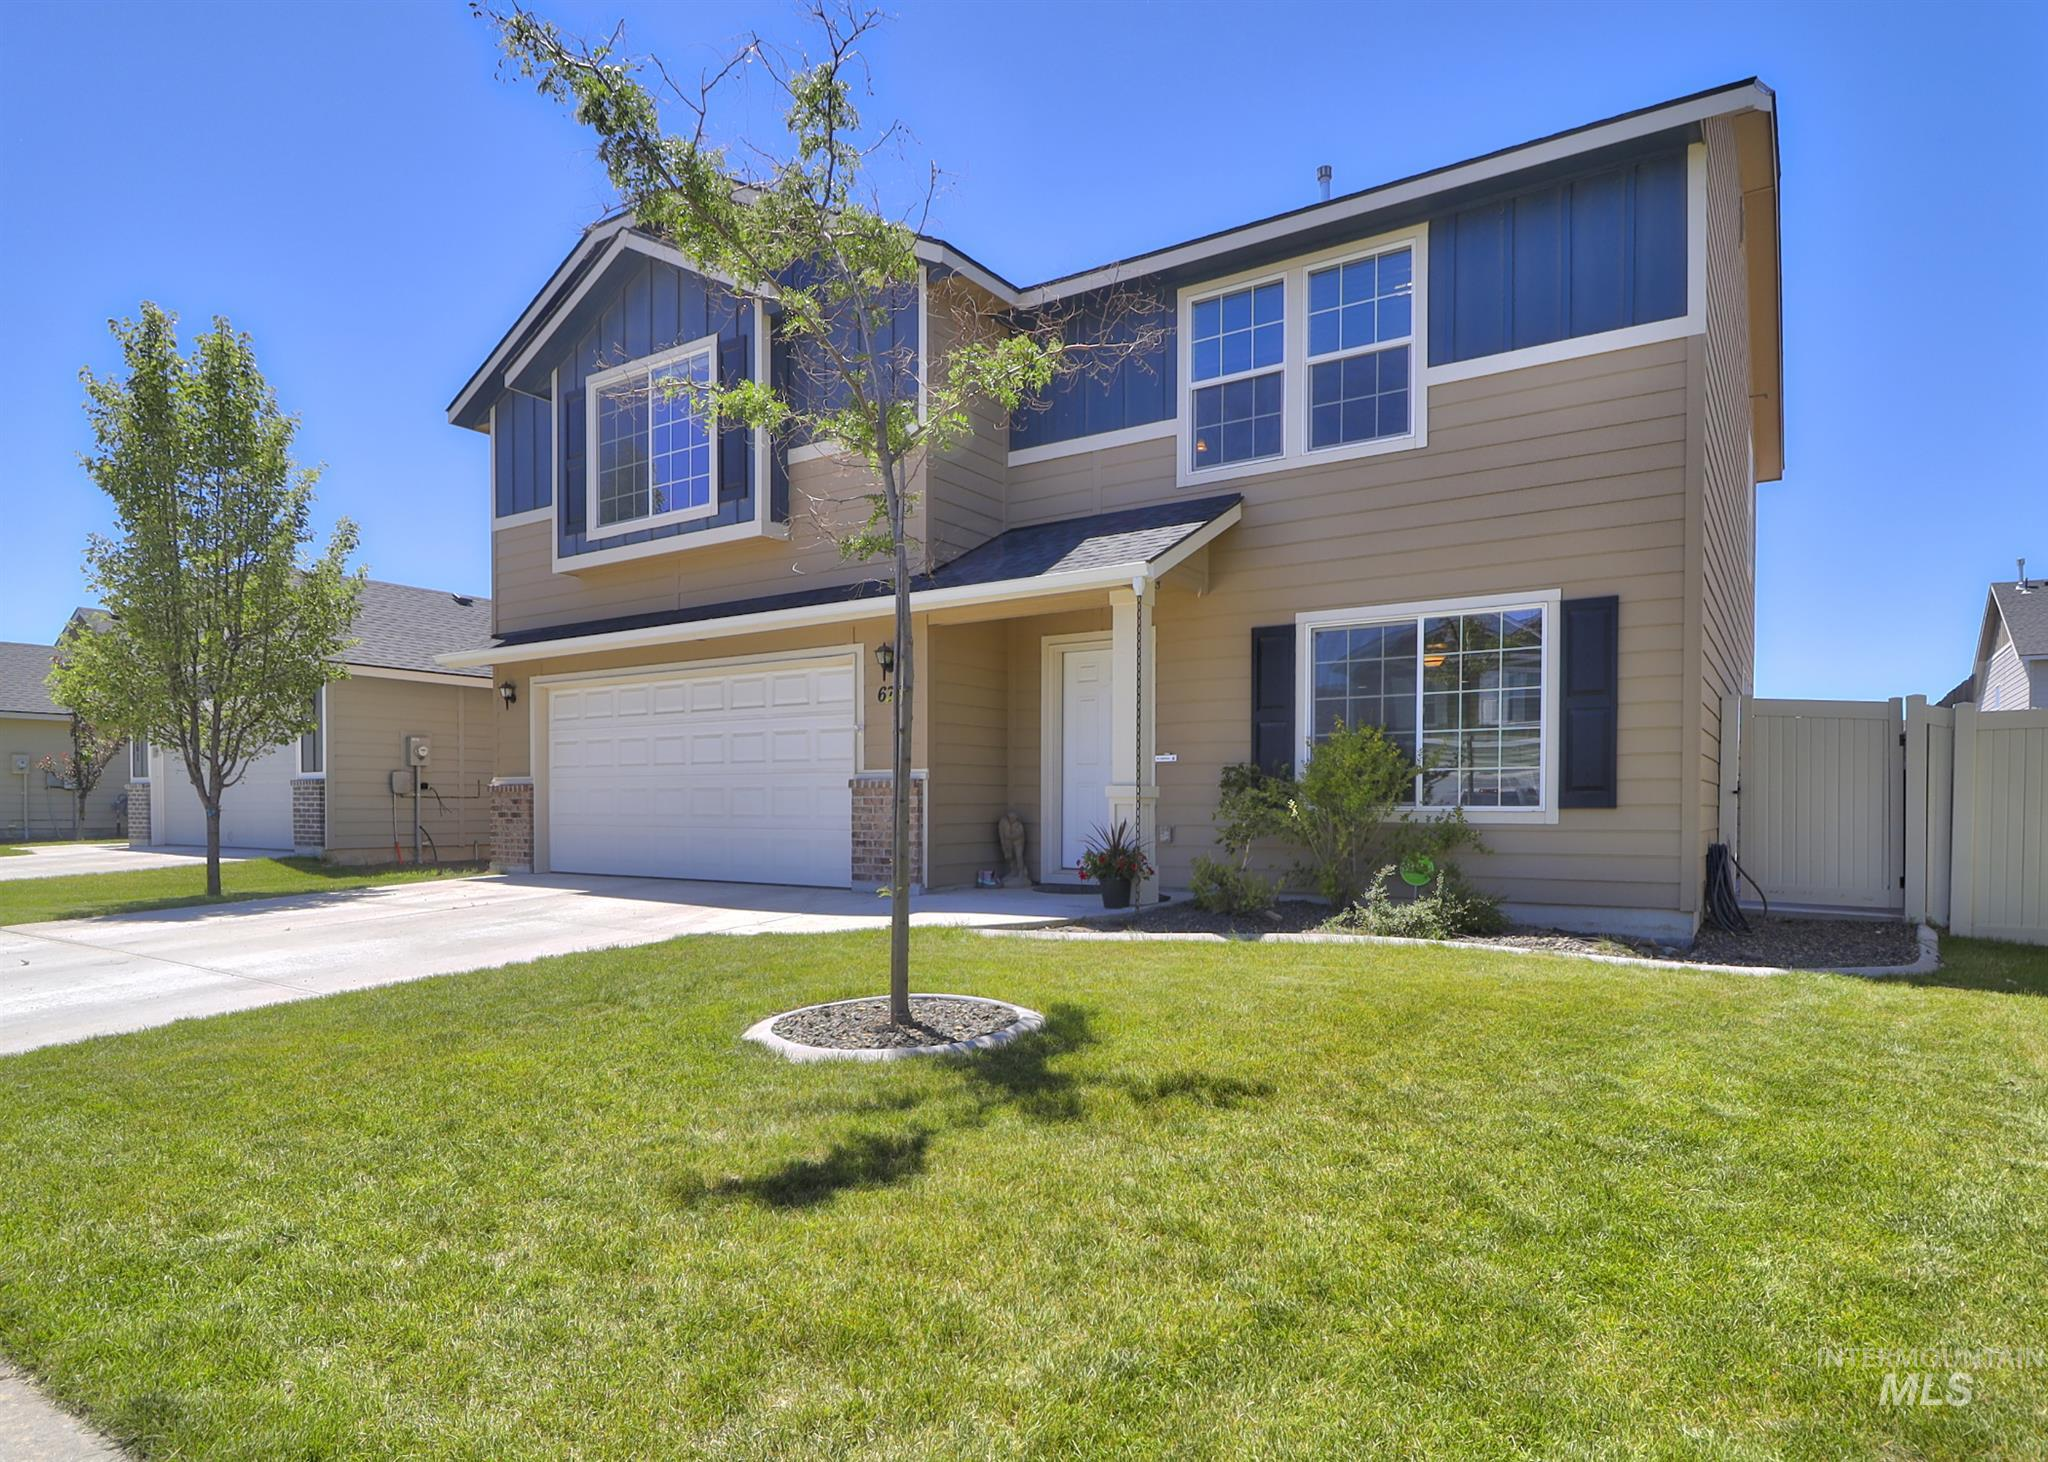 Beautiful Meridian home conveniently located near Ten Mile on-ramp for an easy commute to anywhere! Home boast a large living room open to the dining and kitchen area, beautiful quarts counter tops, island with sink, gas range, brand new dishwasher. Flex room downstairs and a full bath. Upstairs has a large loft, laundry room, 2  bedrooms with large closets and master bedroom with huge walk-in closet.